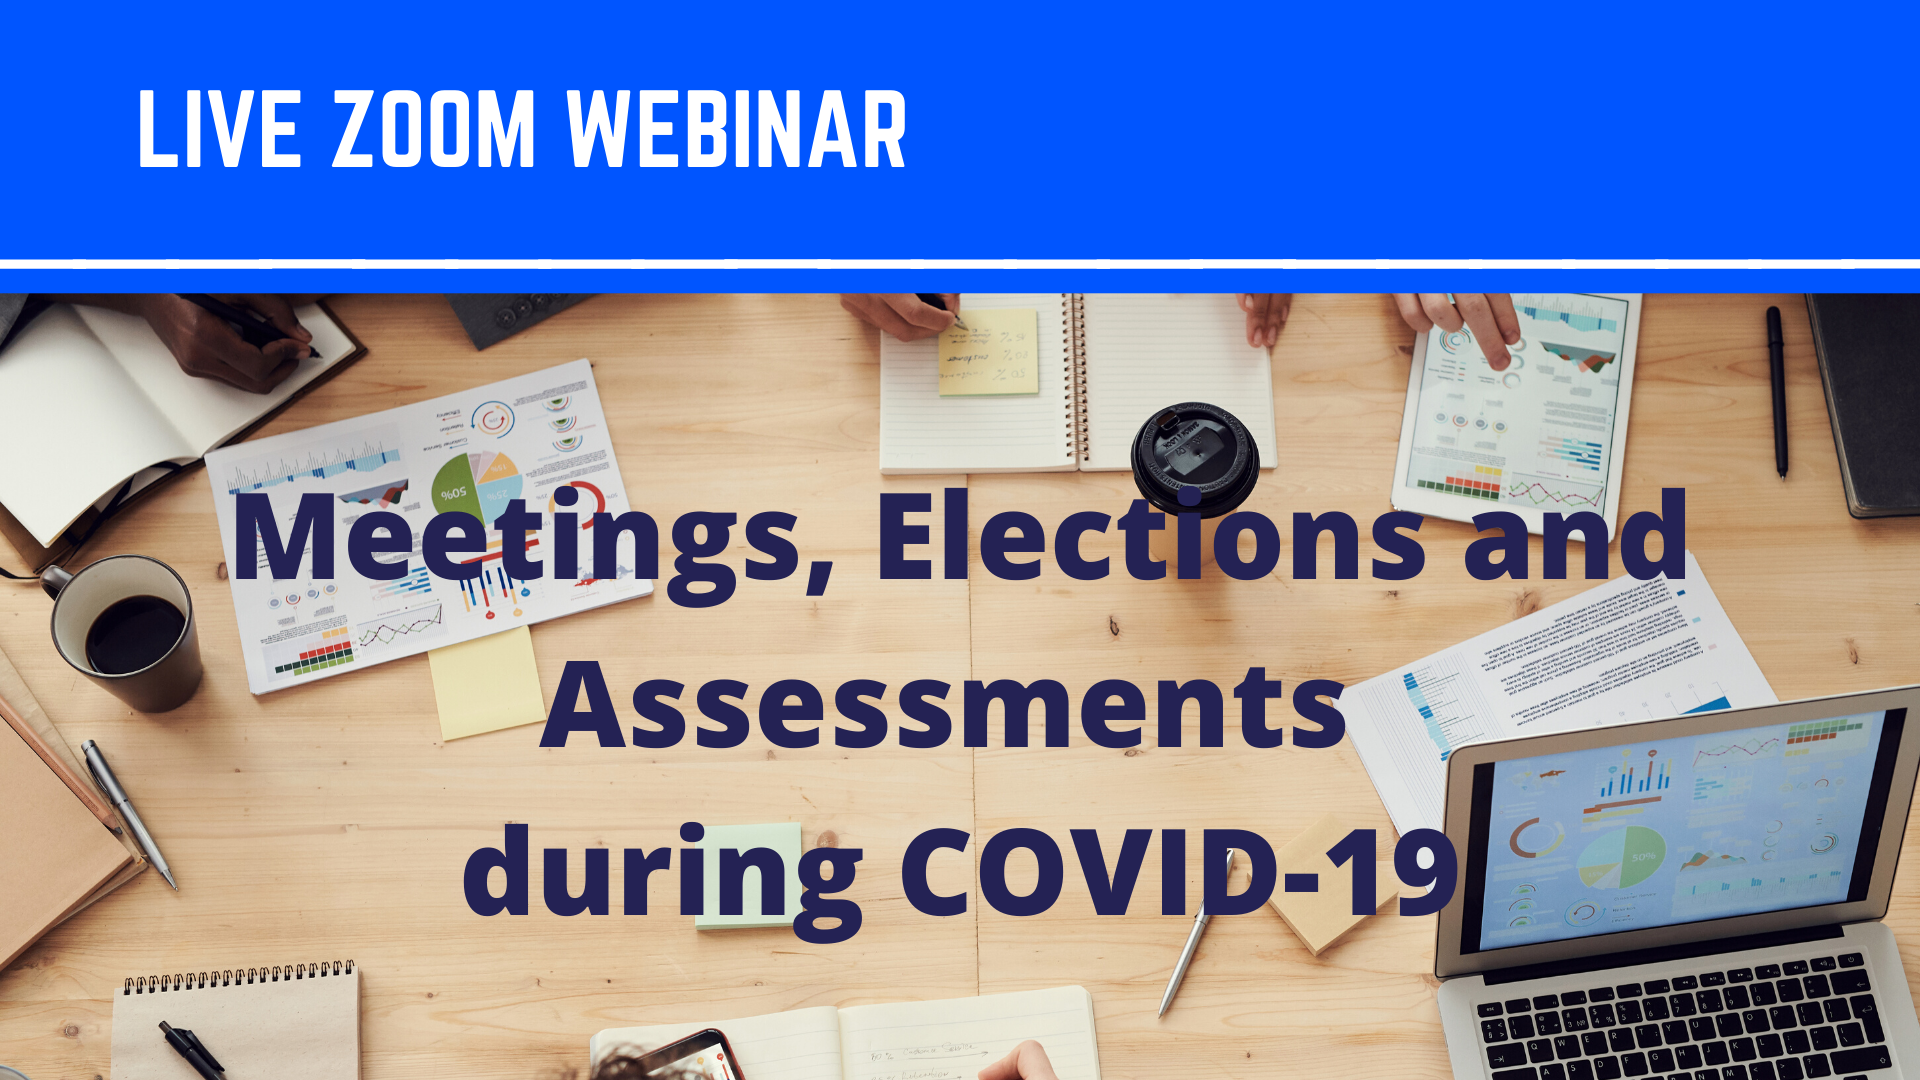 Live Webinar – Meetings, Elections and Assessments during COVID-19